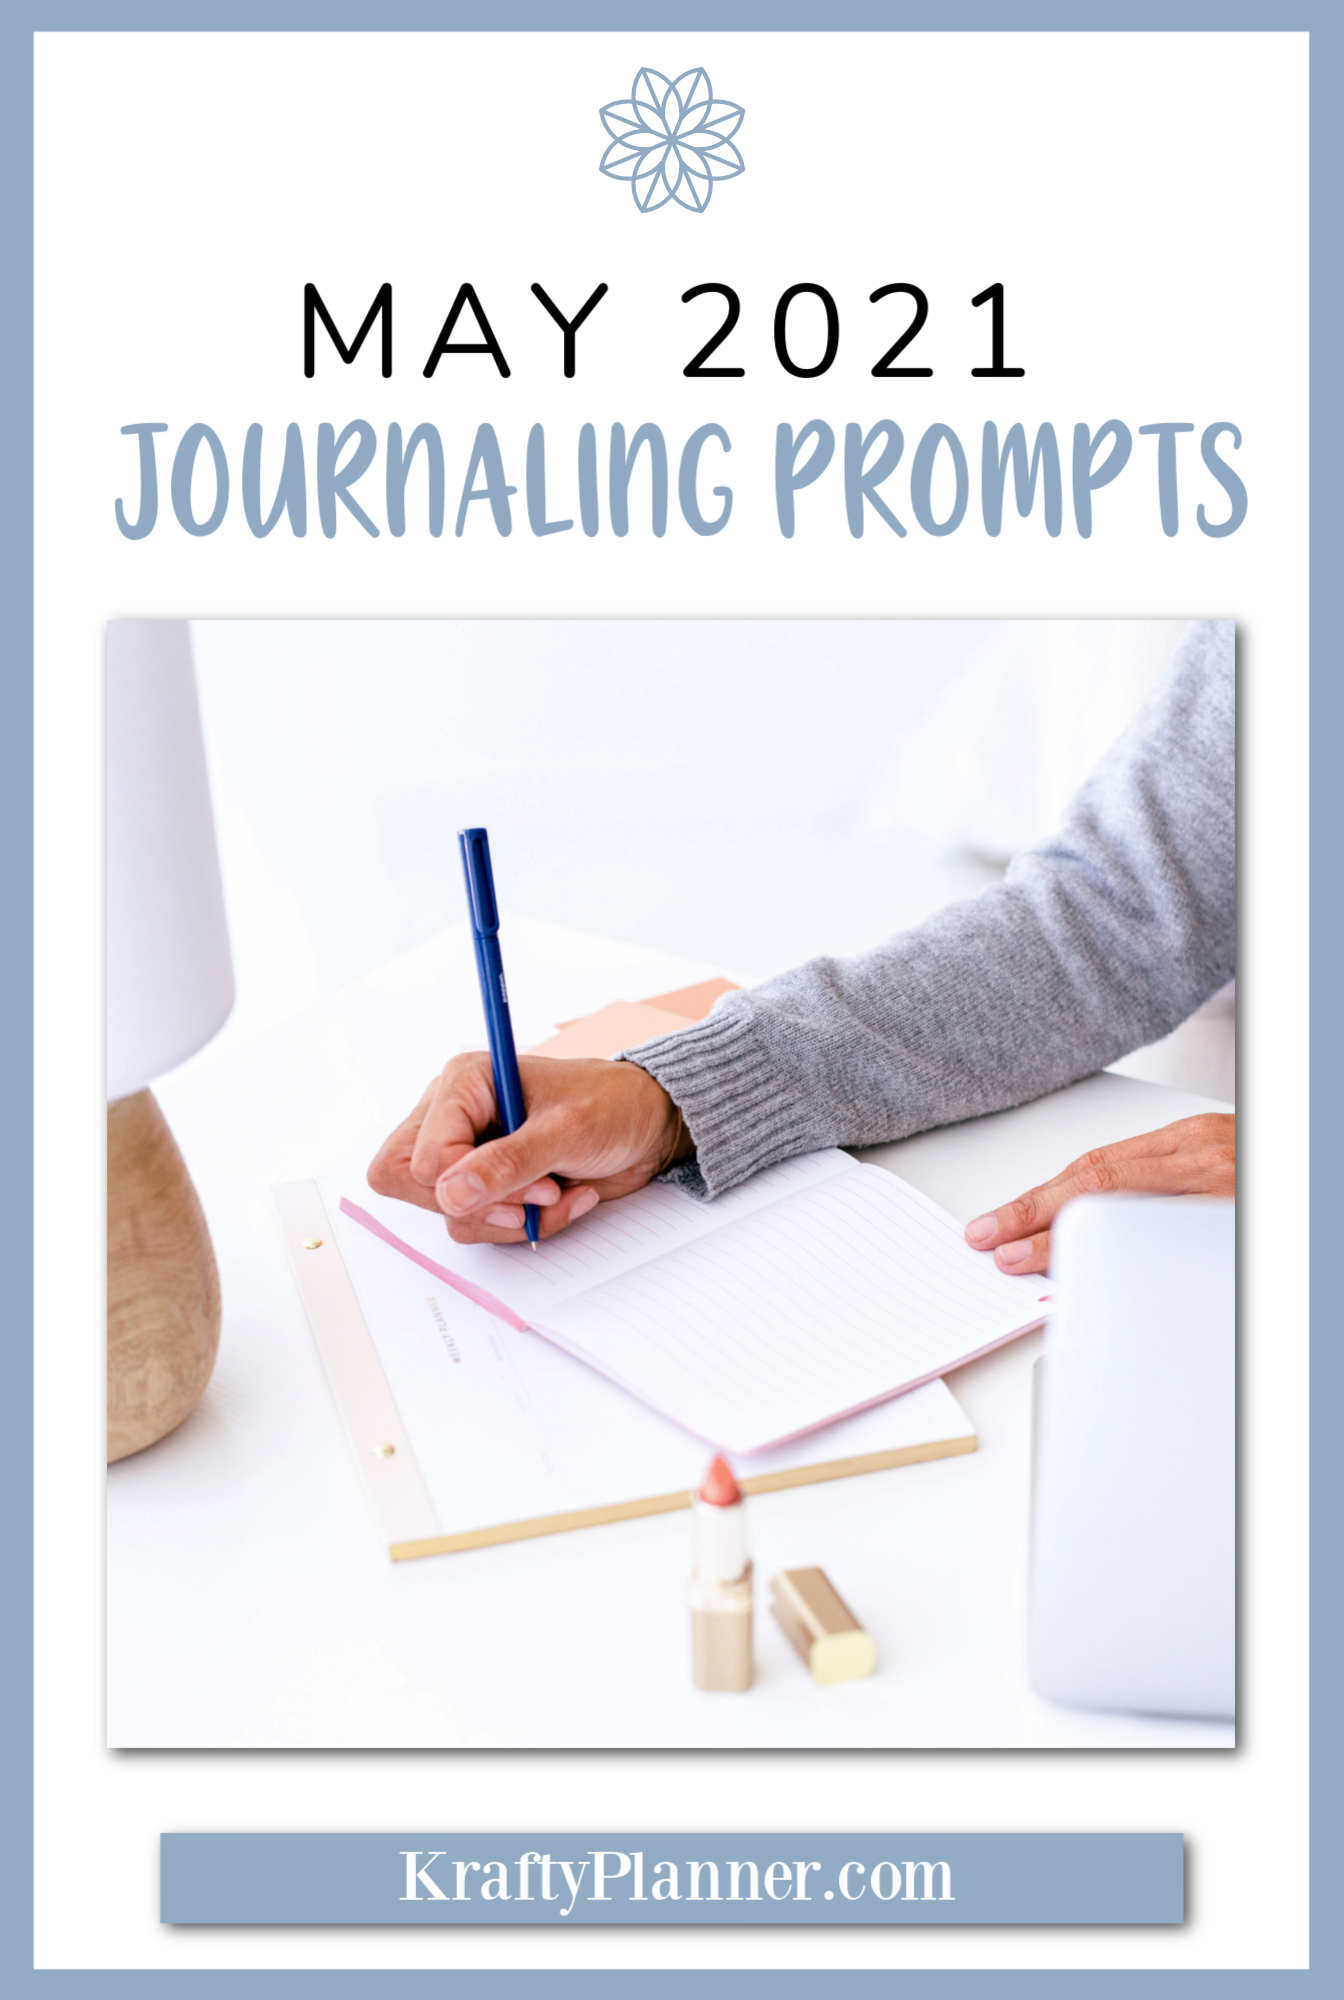 Daily Journaling Prompts for May 2021  PIN 2 copy.png